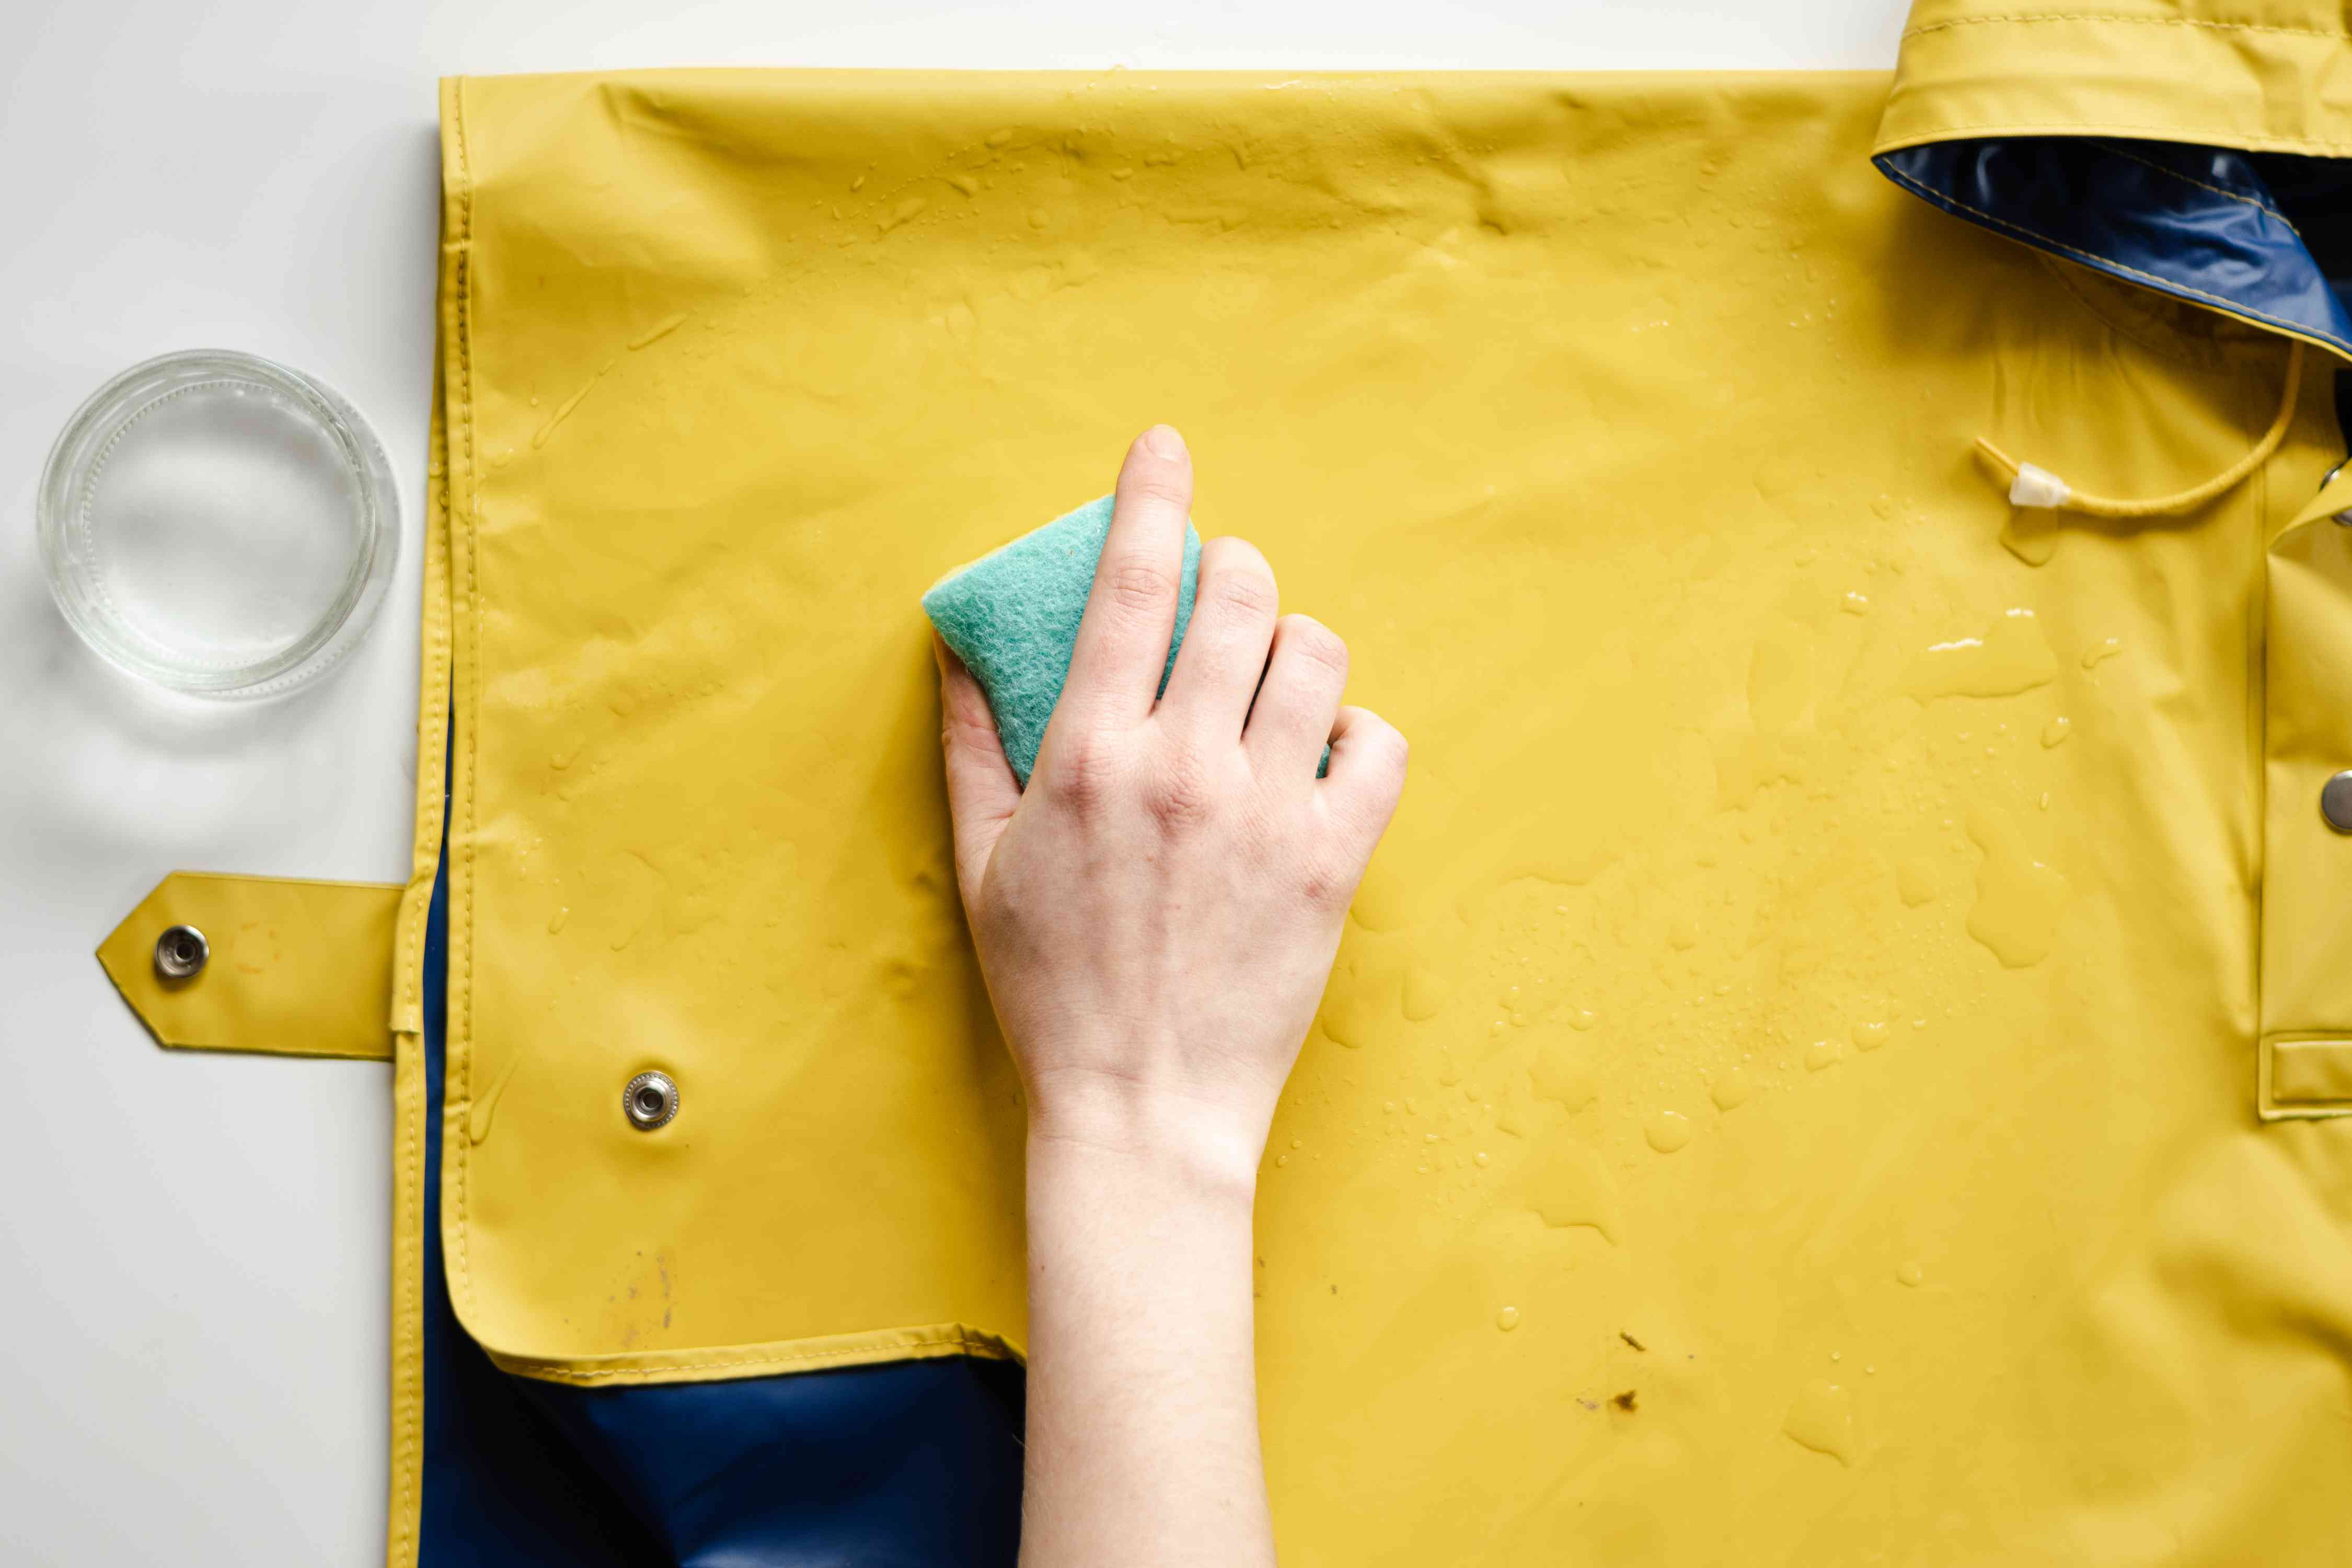 wiping a vinyl jacket with a sponge